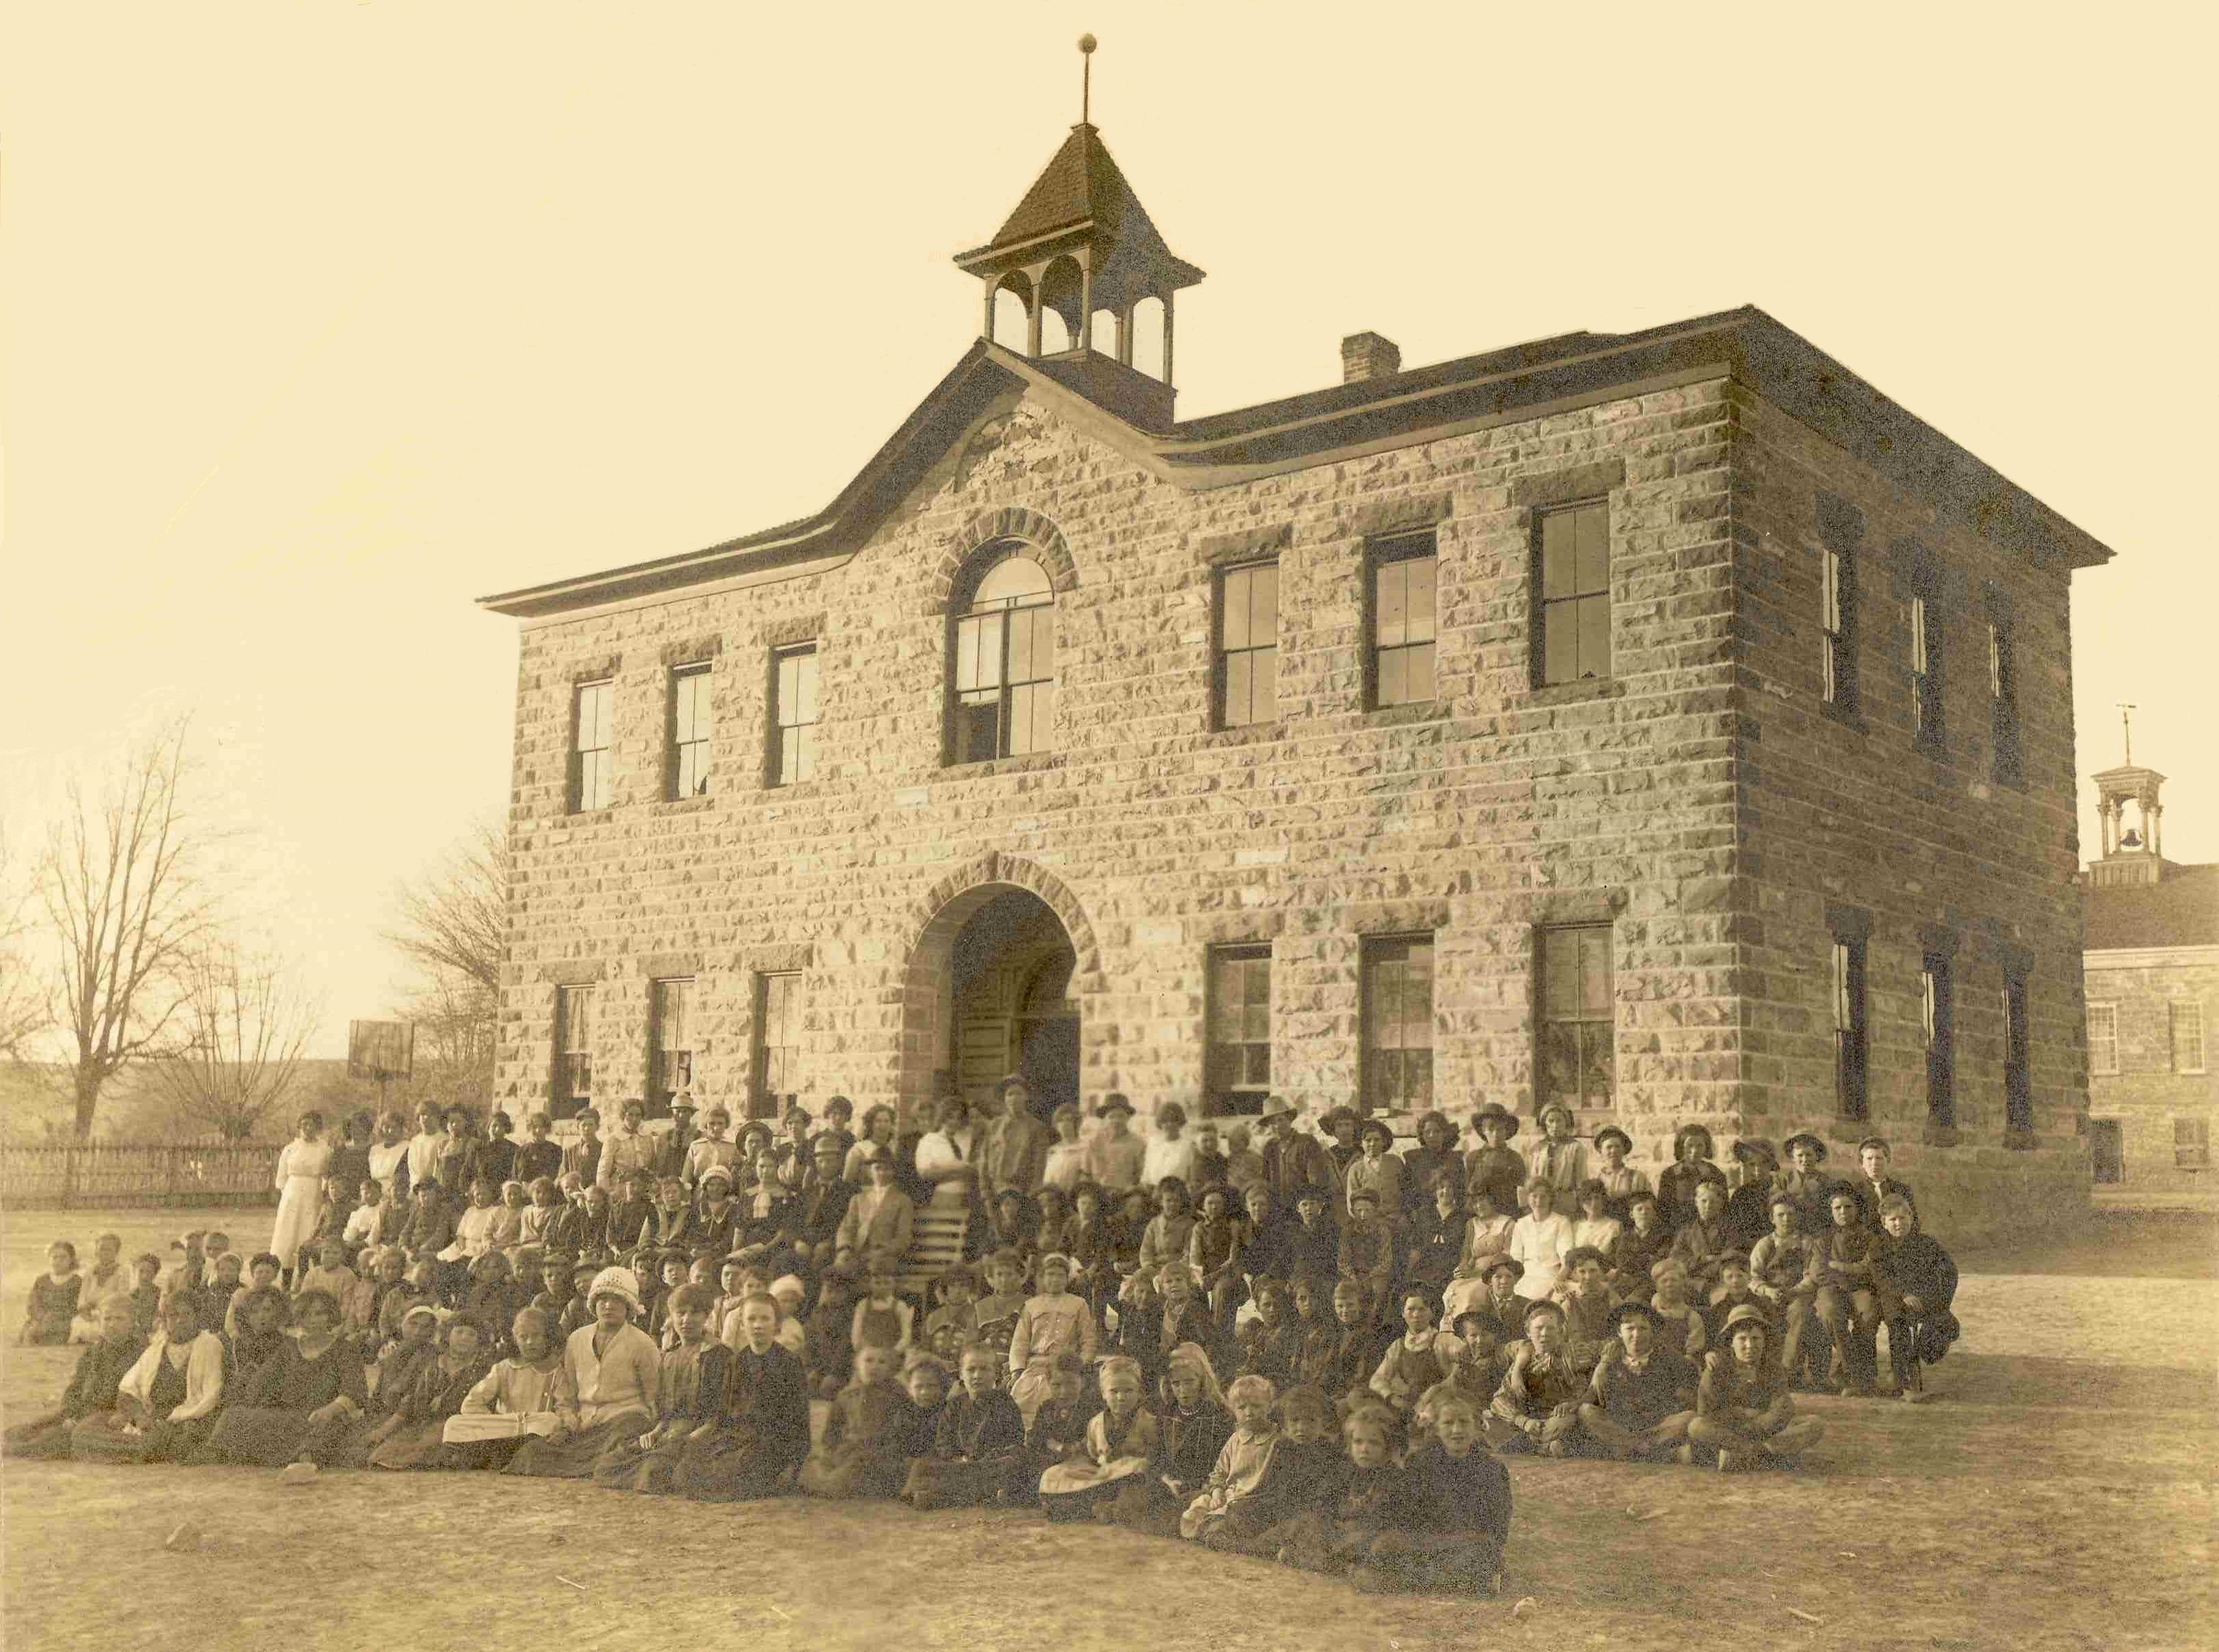 Washington School in 1914